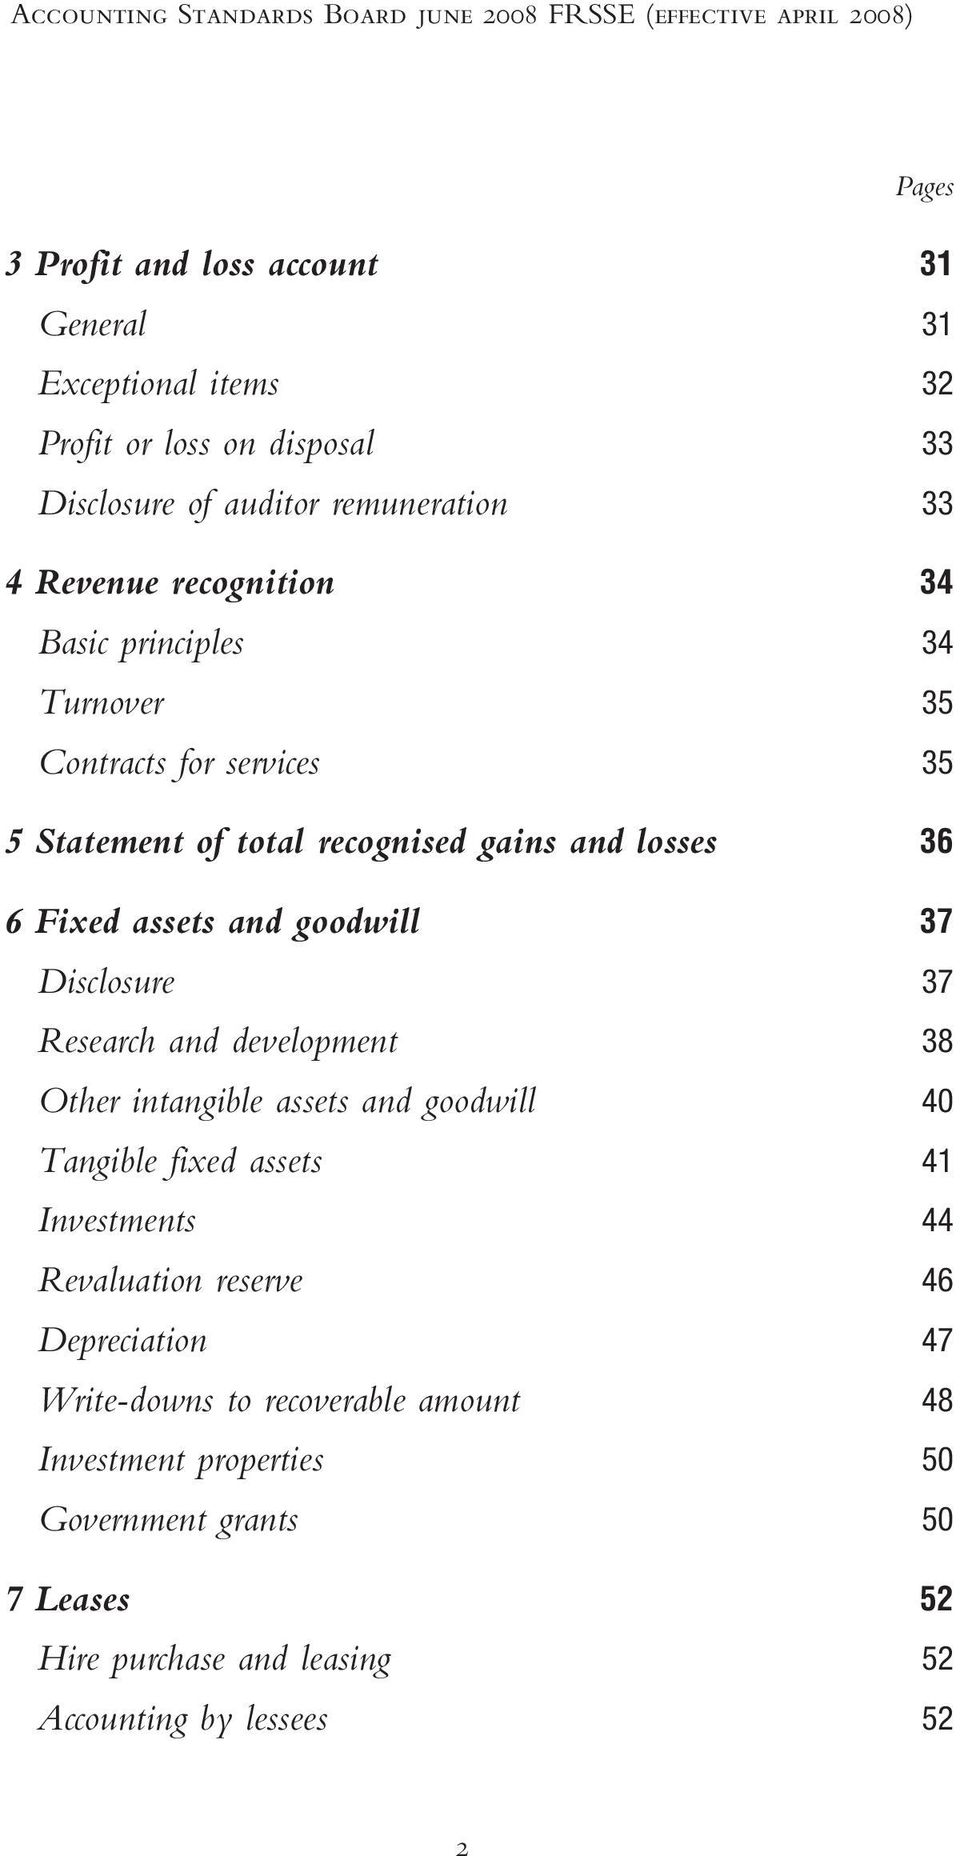 36 6 Fixed assets and goodwill 37 Disclosure 37 Research and development 38 Other intangible assets and goodwill 40 Tangible fixed assets 41 Investments 44 Revaluation